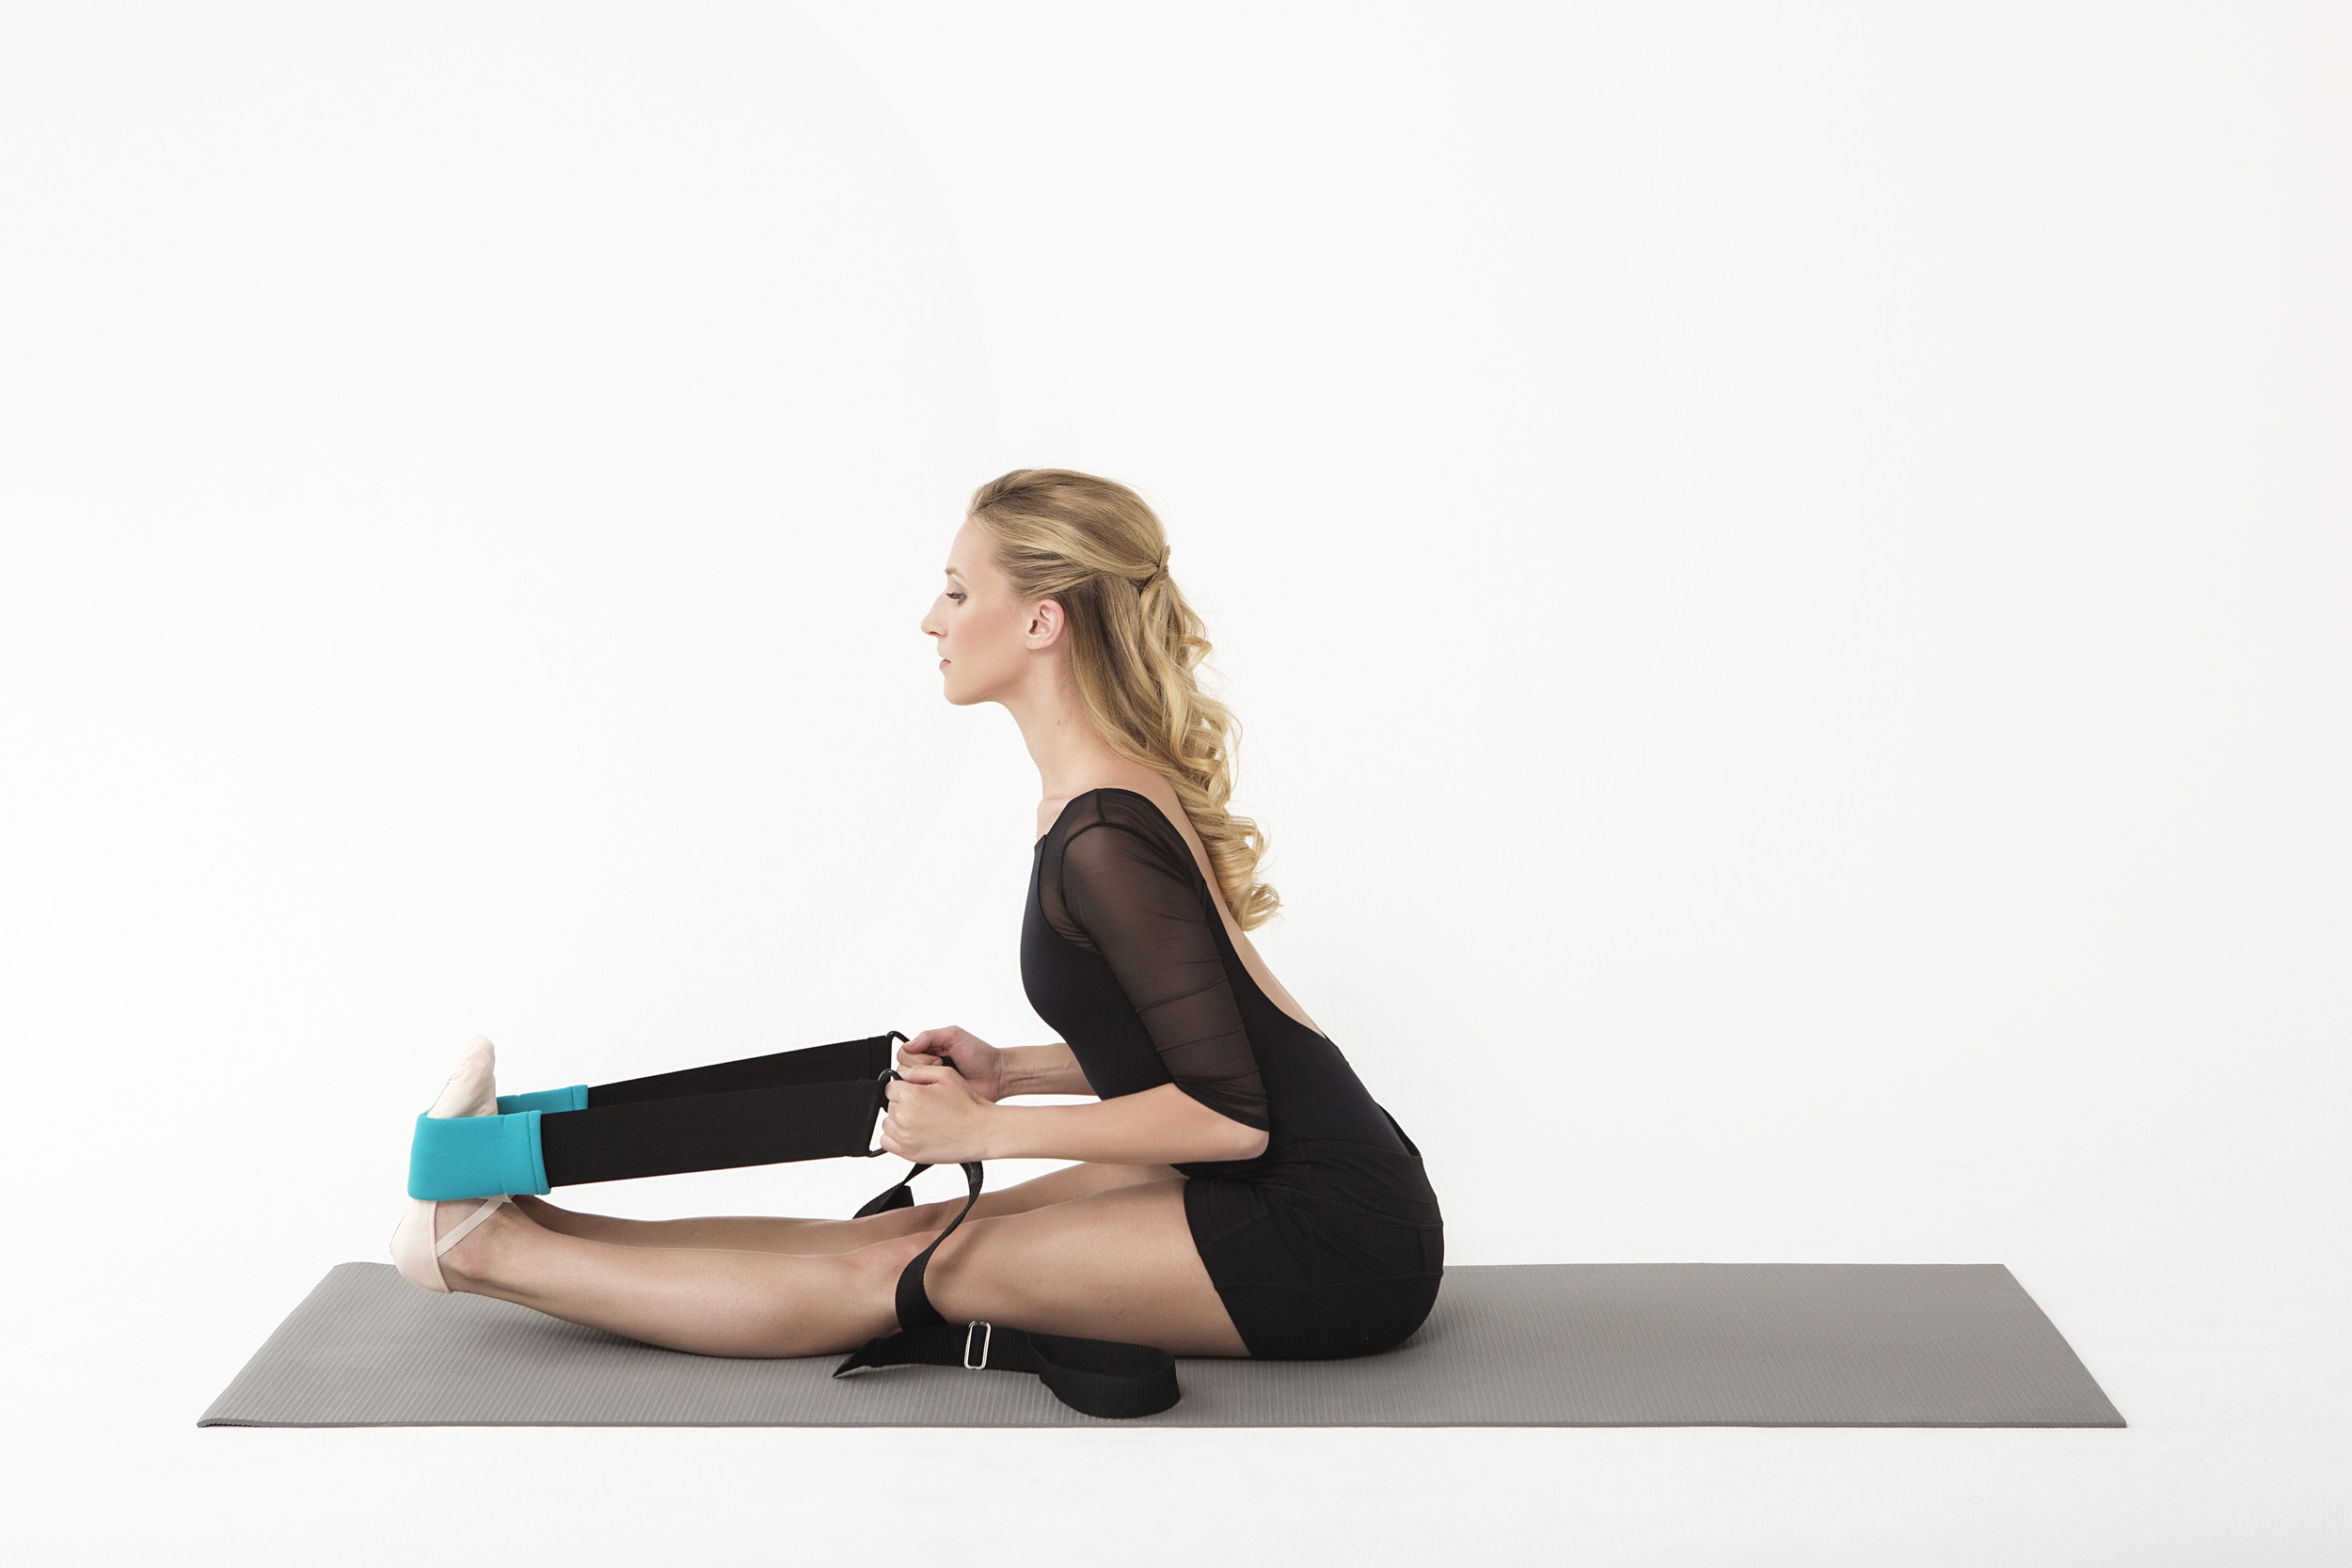 Go deeper into your Paschimottanasan:  while practicing a seated forward fold, place the center strap around the soles of your feel and grab the loops in each hand. Pull the straps towards you with your elbows hugged in close by your sides as you fold forward. Press through the soles of your feel as you pull yourself forward to achieve a greater stretch.